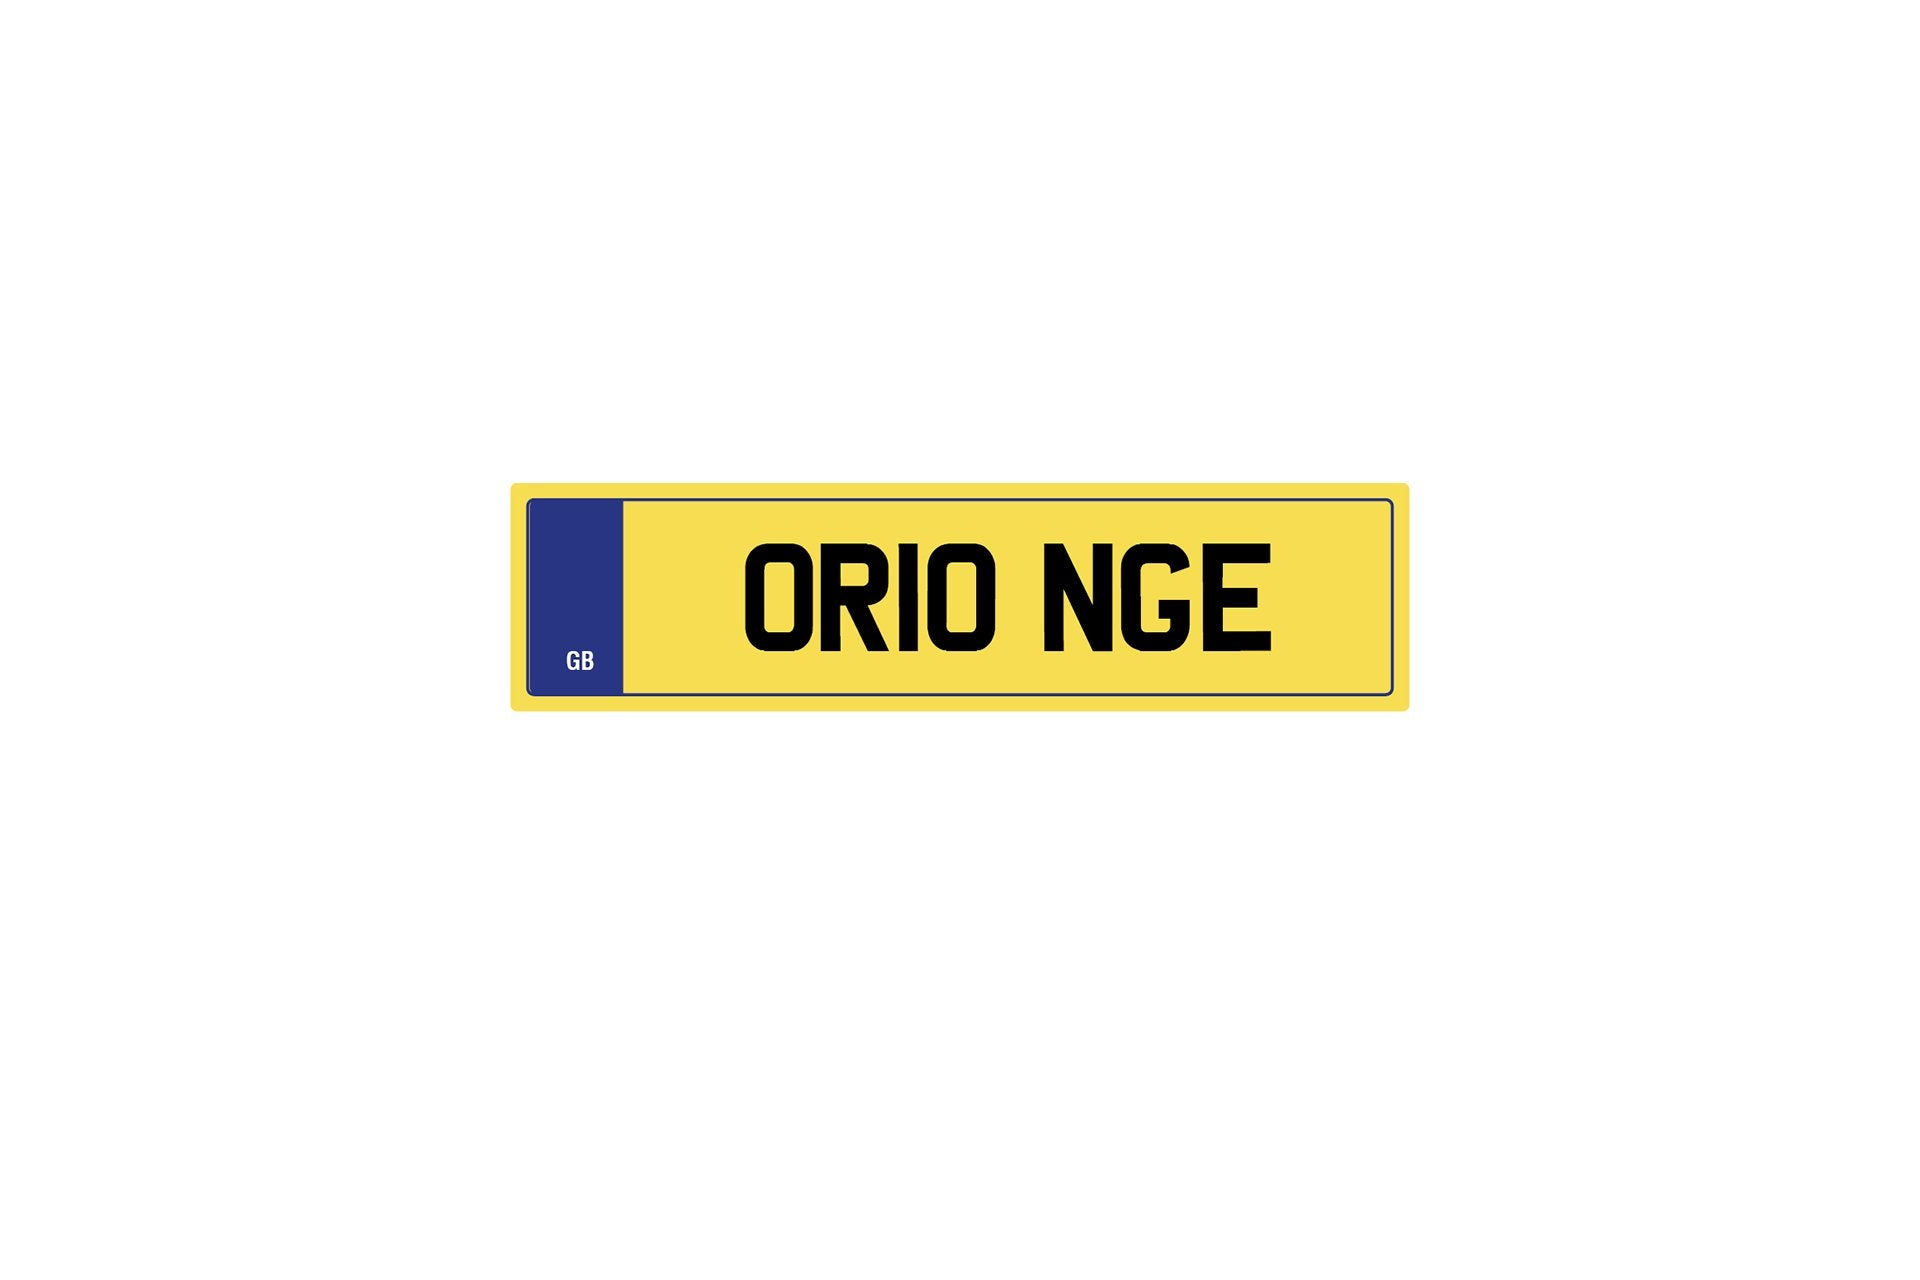 Private Plate Or10 Nge by Kahn - Image 239